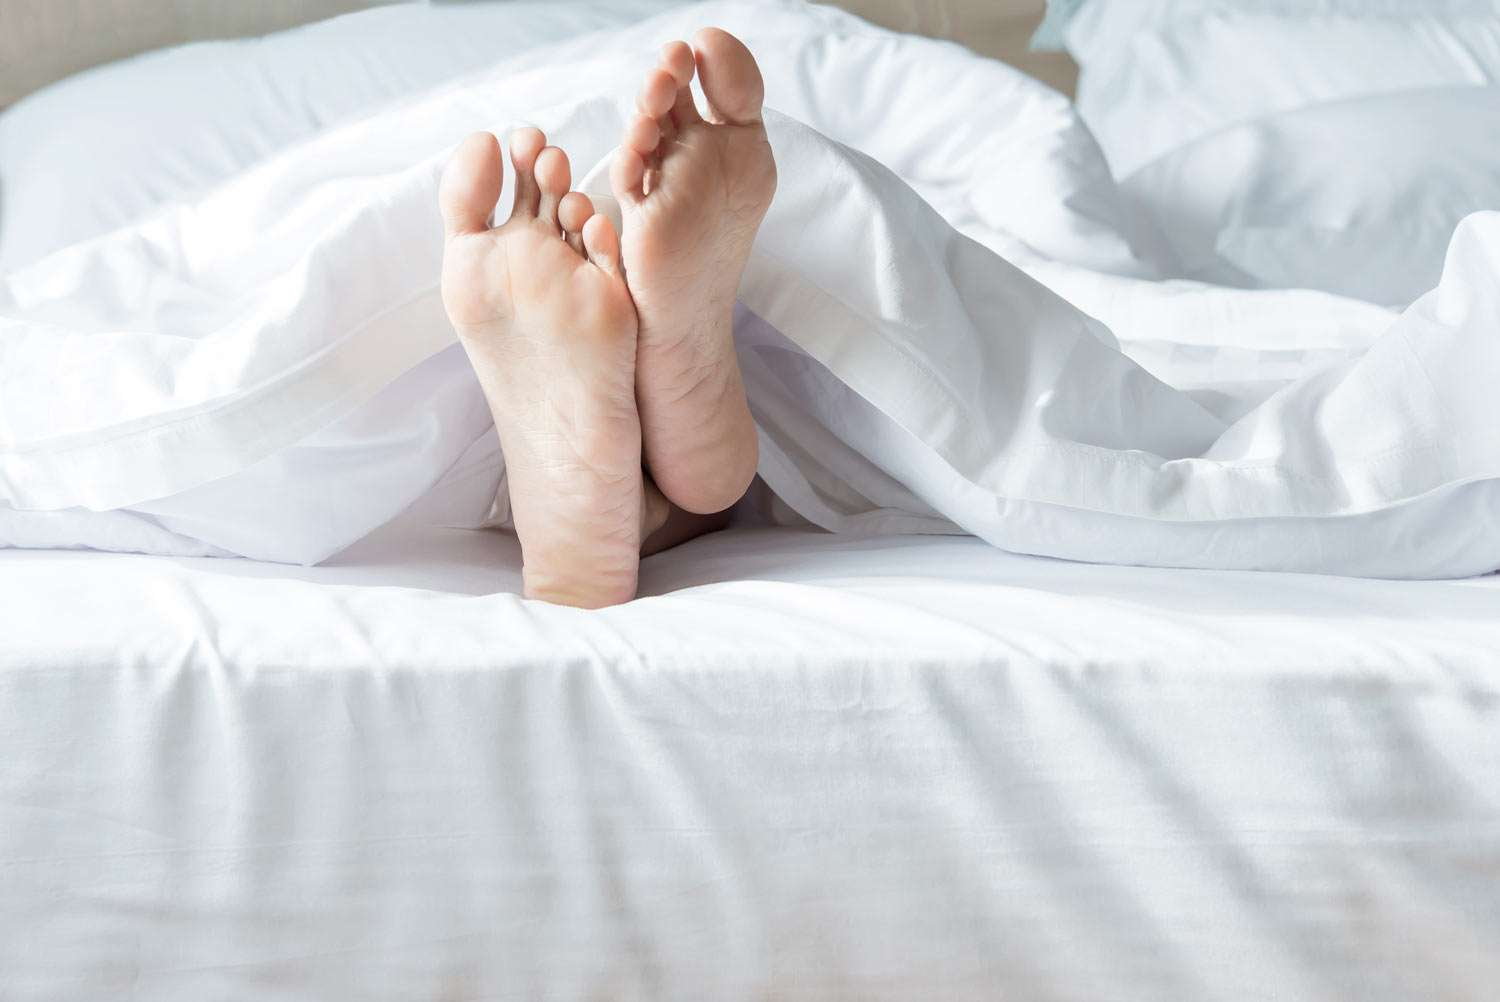 What bedding will ensure healthy sleep